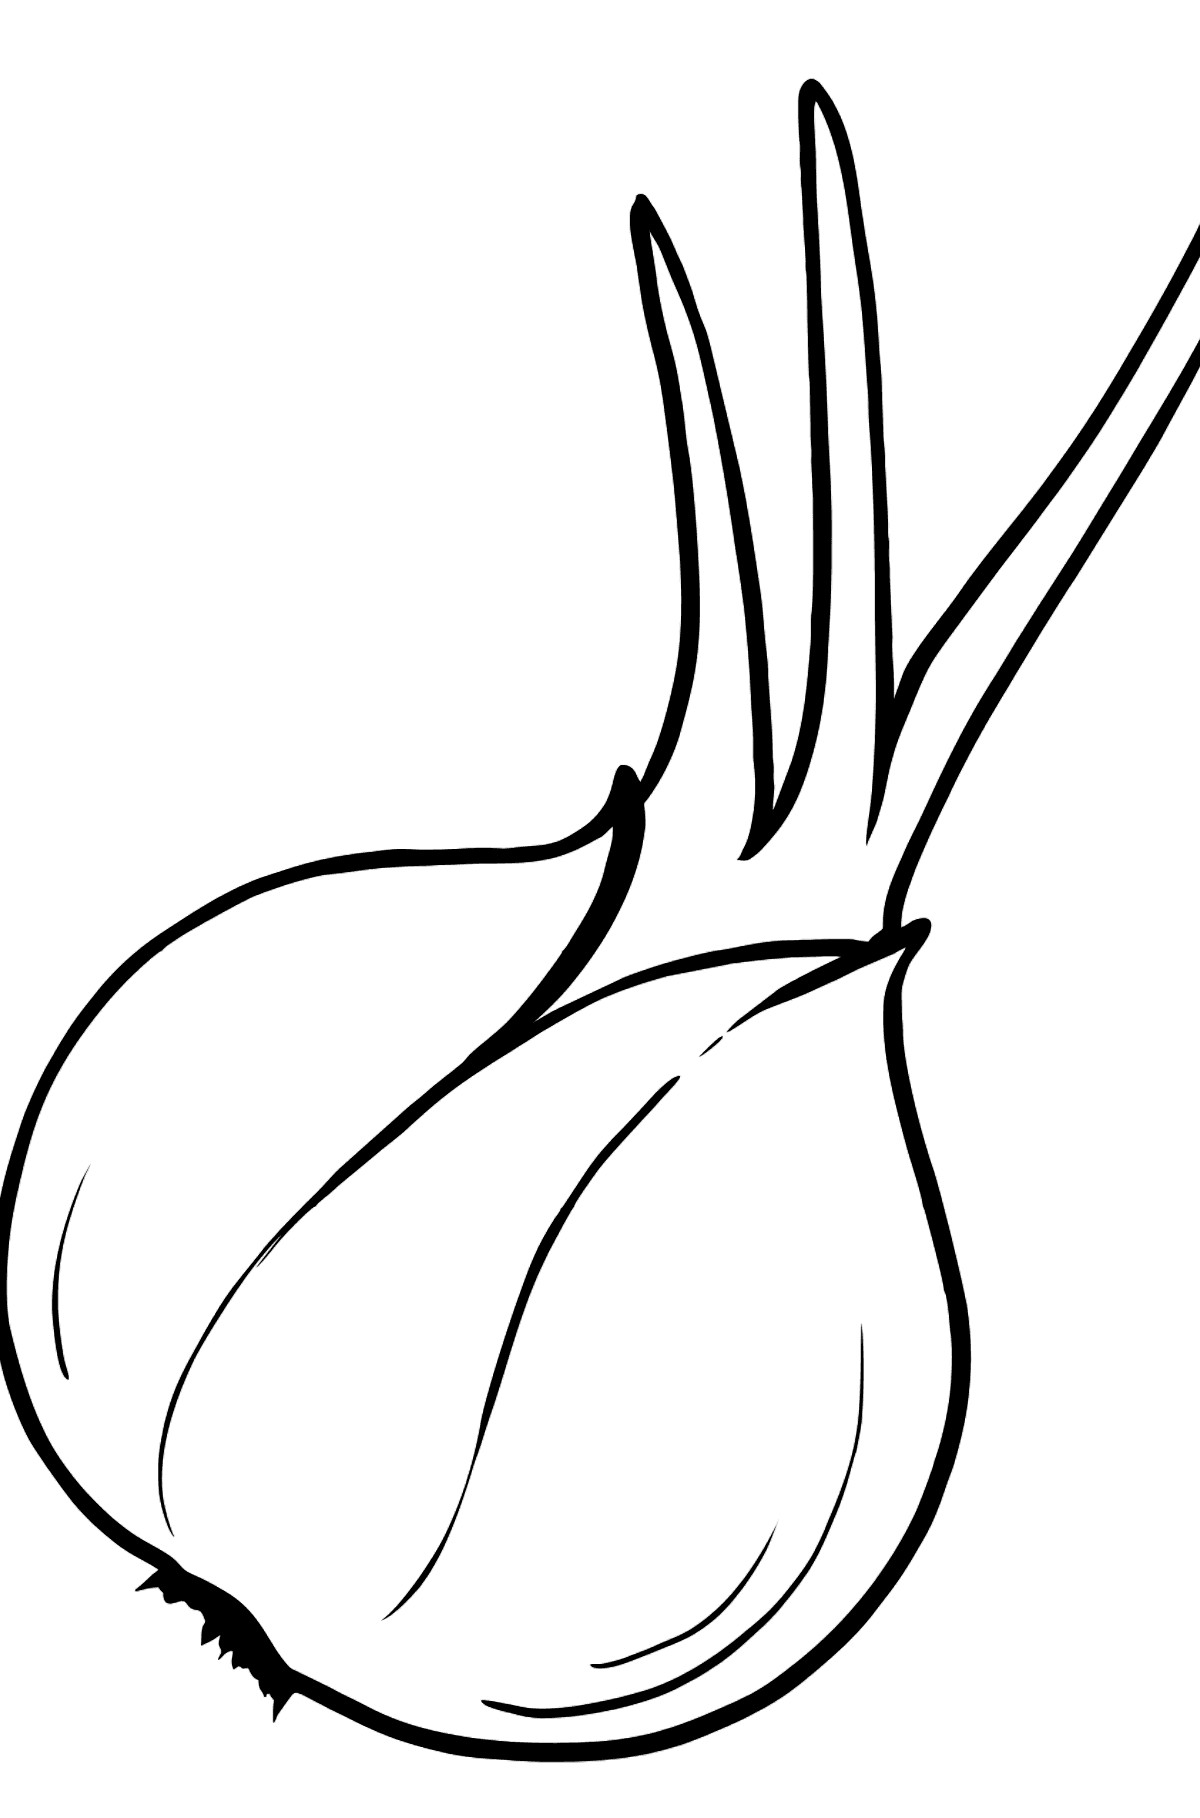 Onion coloring page - Coloring Pages for Kids